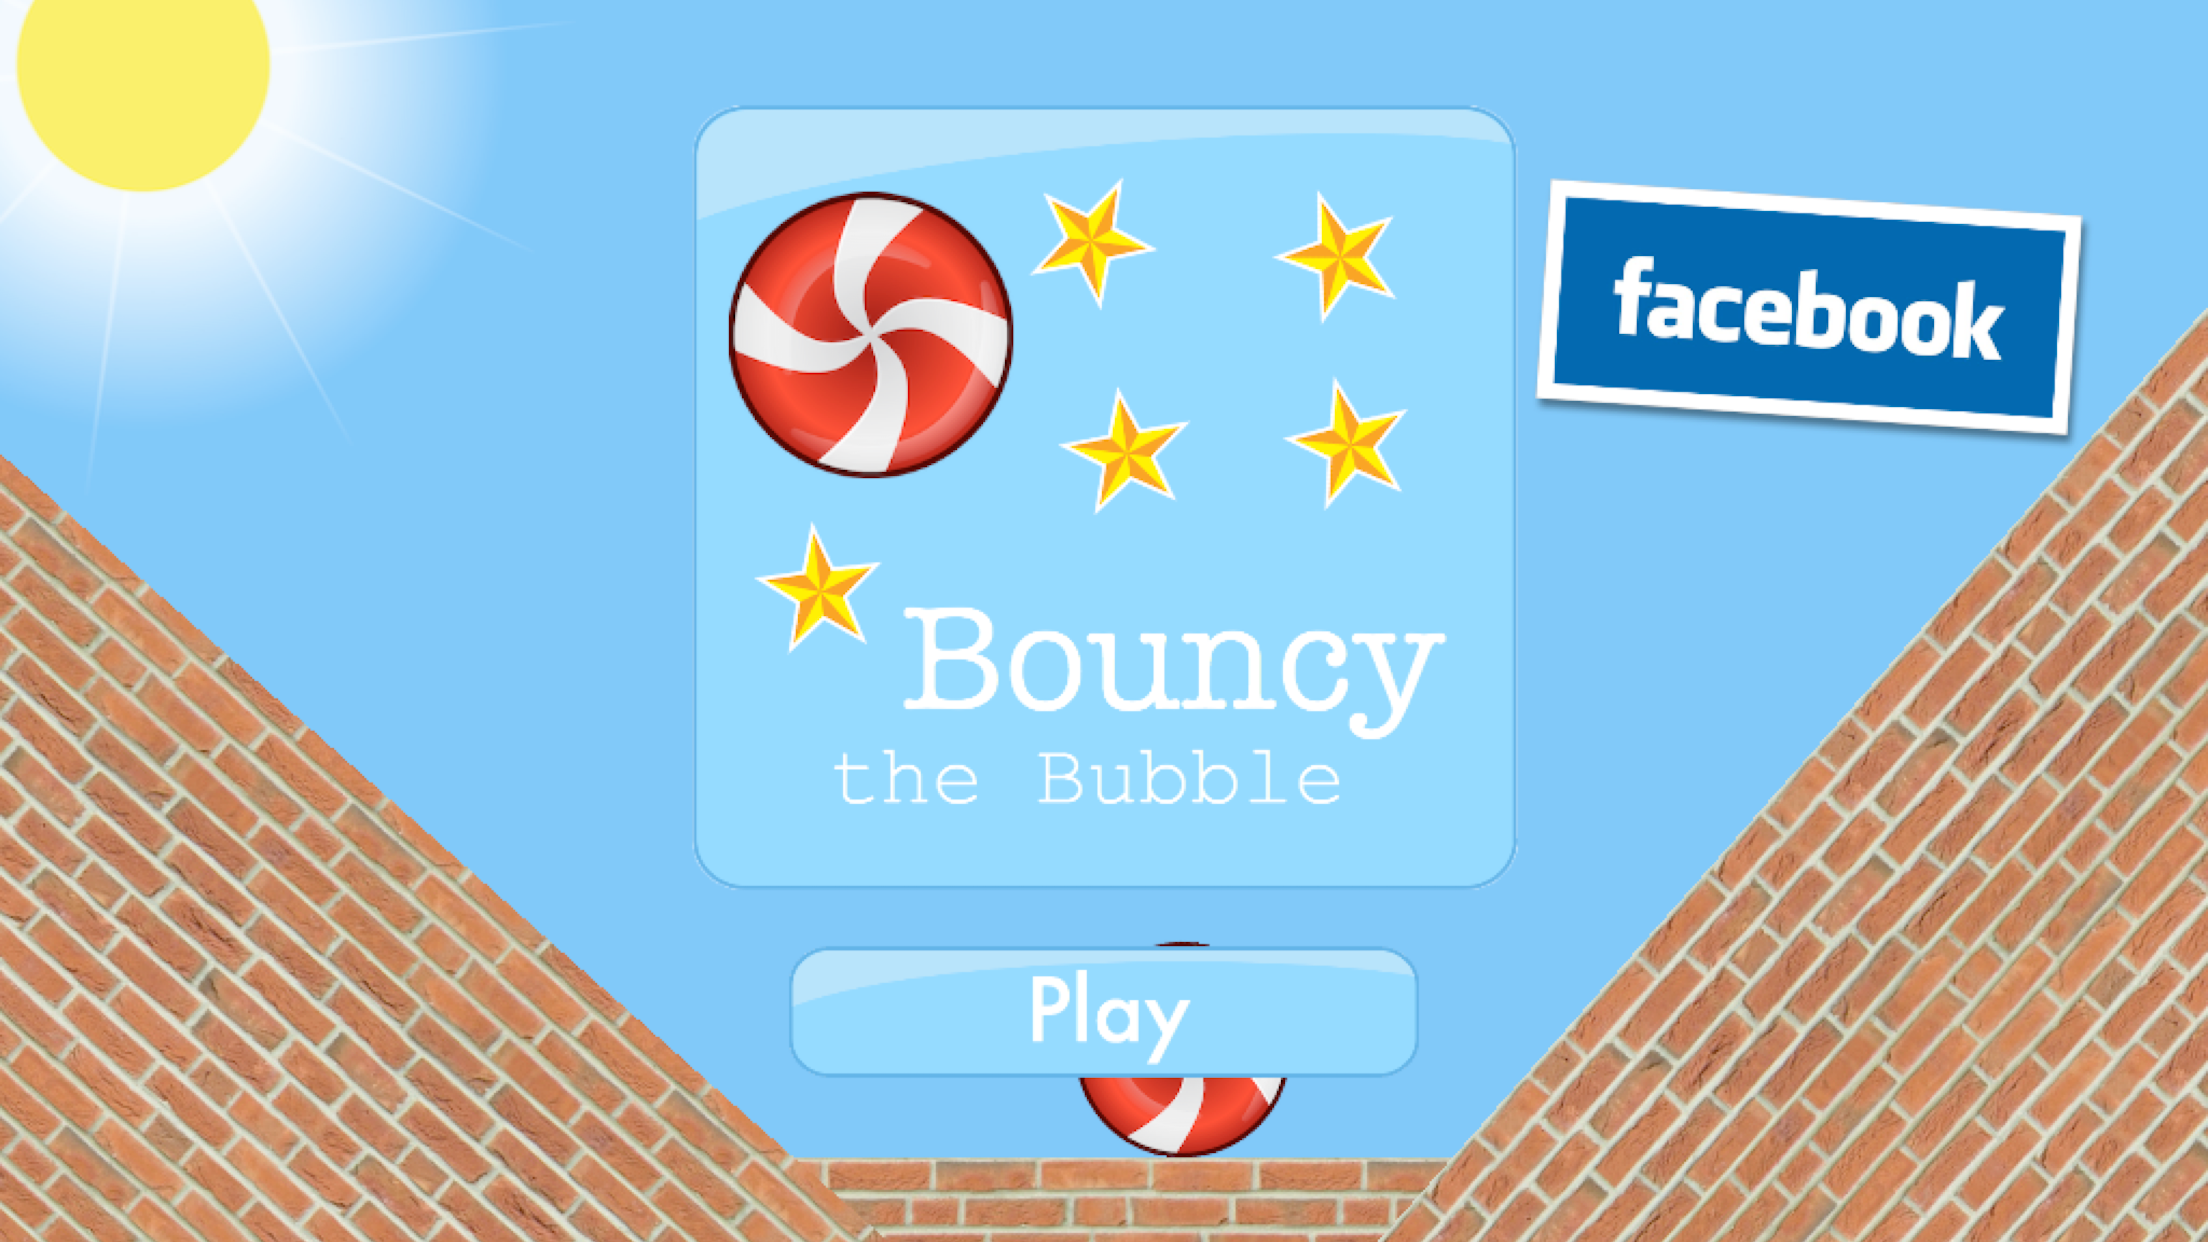 Bouncy Bubble